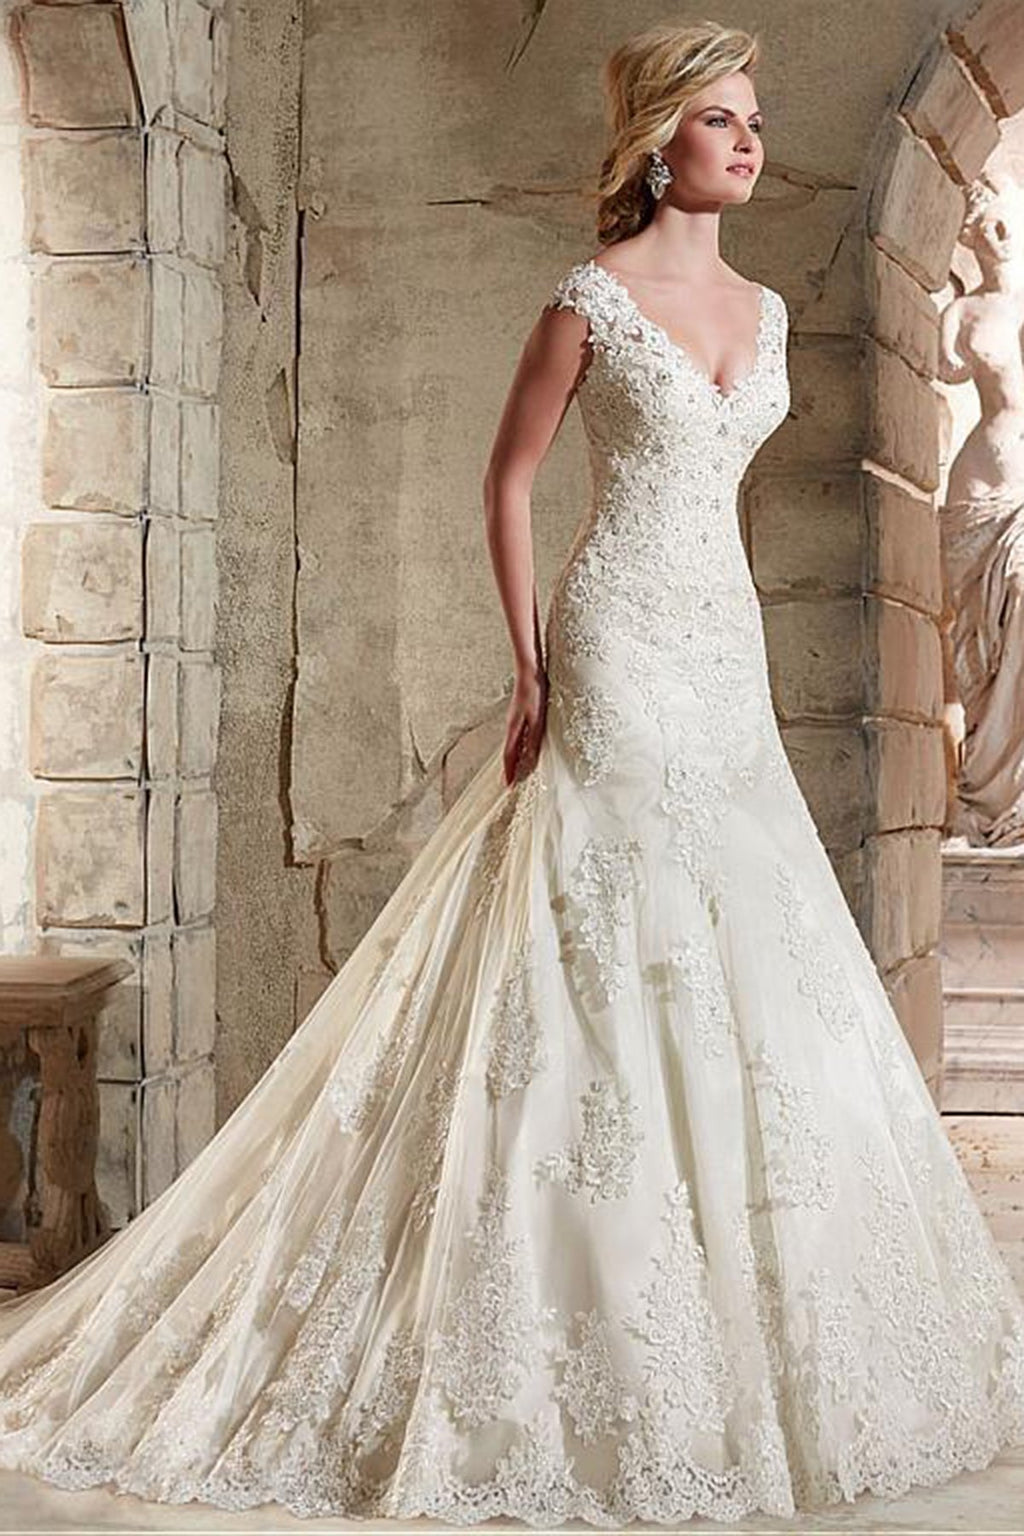 Shoulder Deep V Neck Fishtail Lace Backless Wedding Dress Wedding Dress